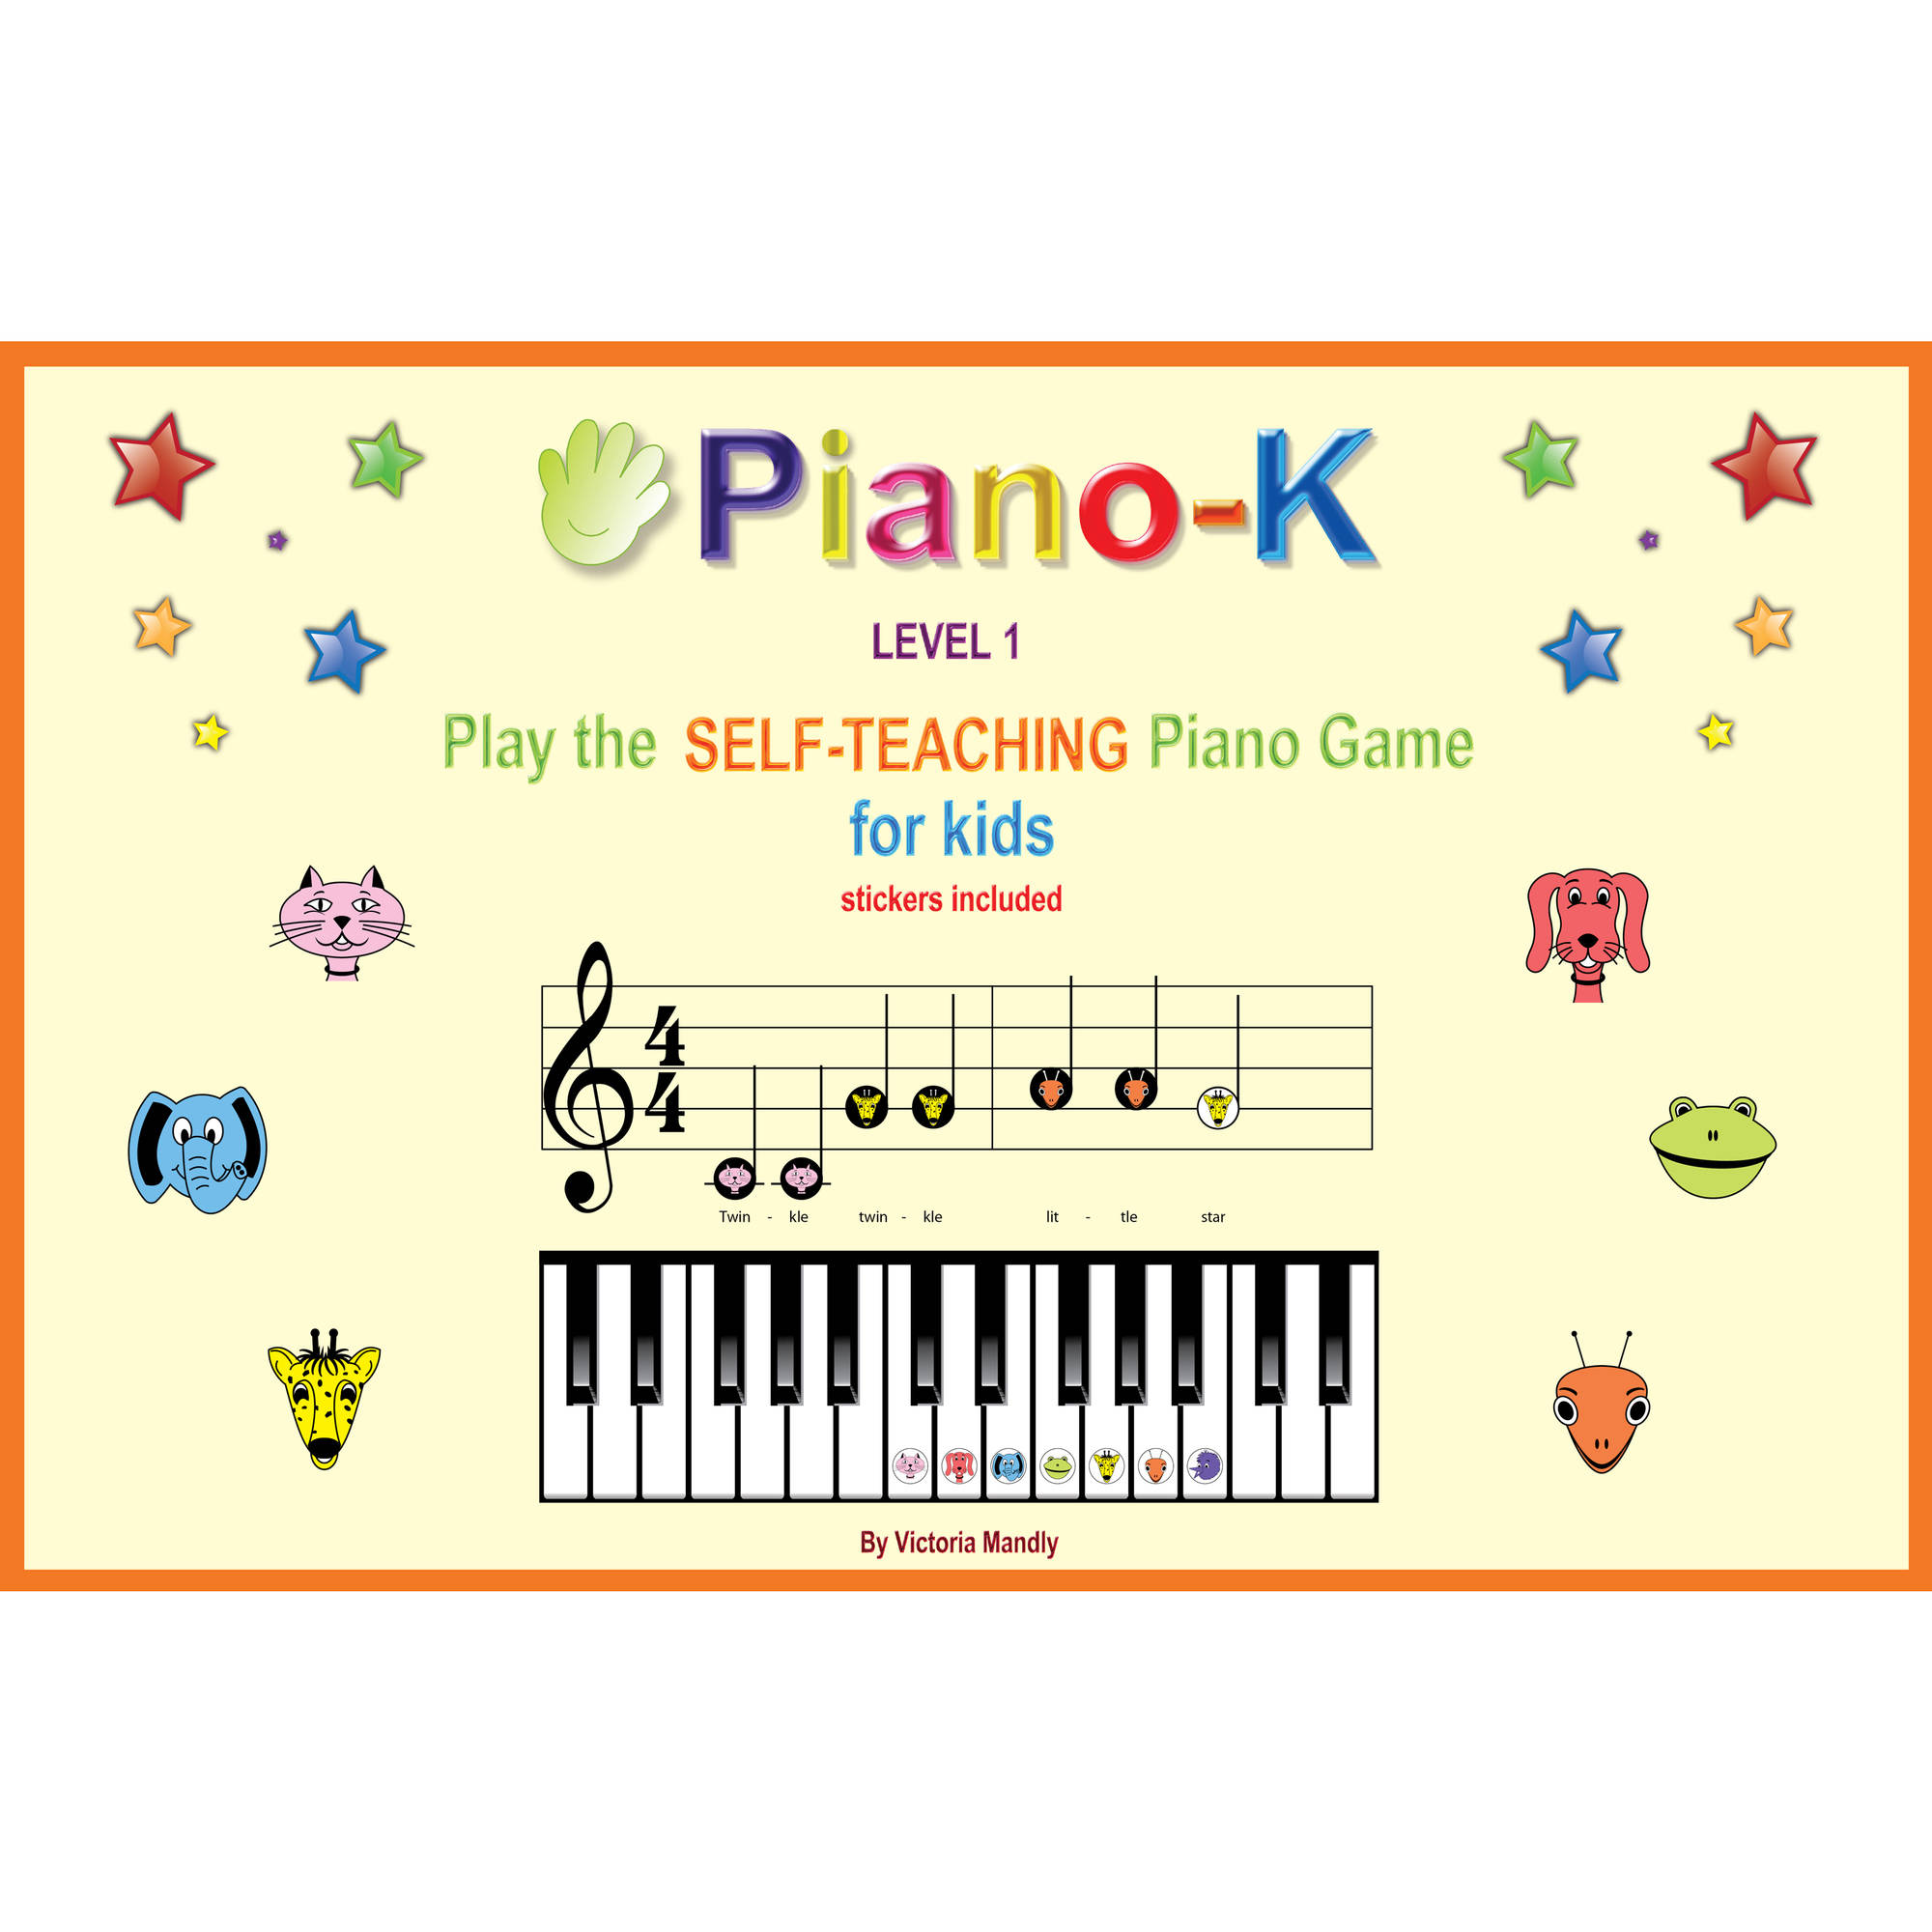 Piano-K Play the Self-teaching Piano Game for Kids, Level 1